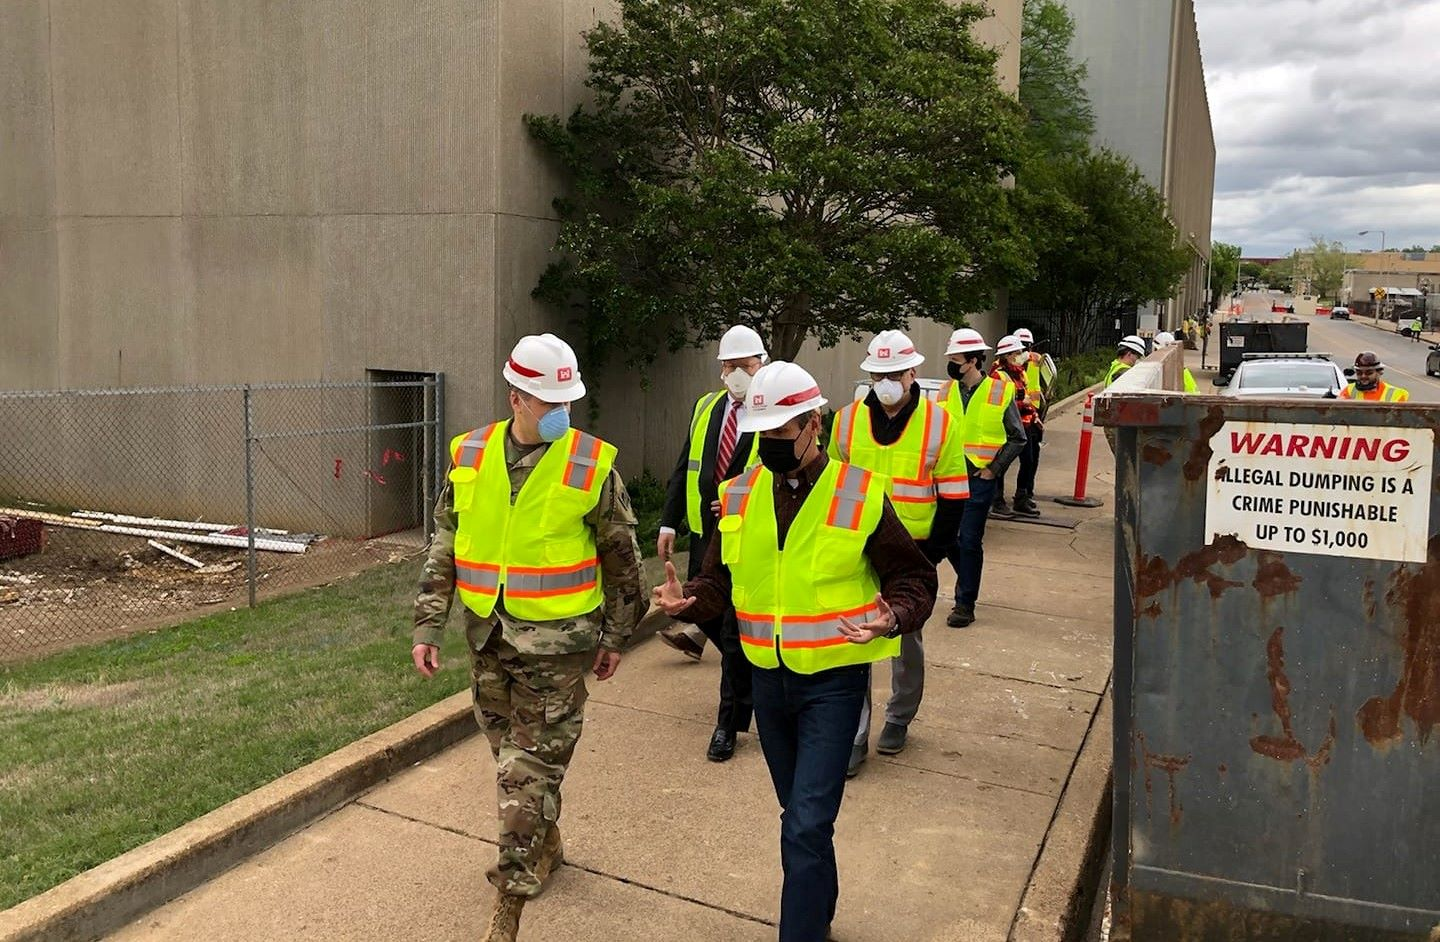 AECOM collaborate with stakeholders from Military base